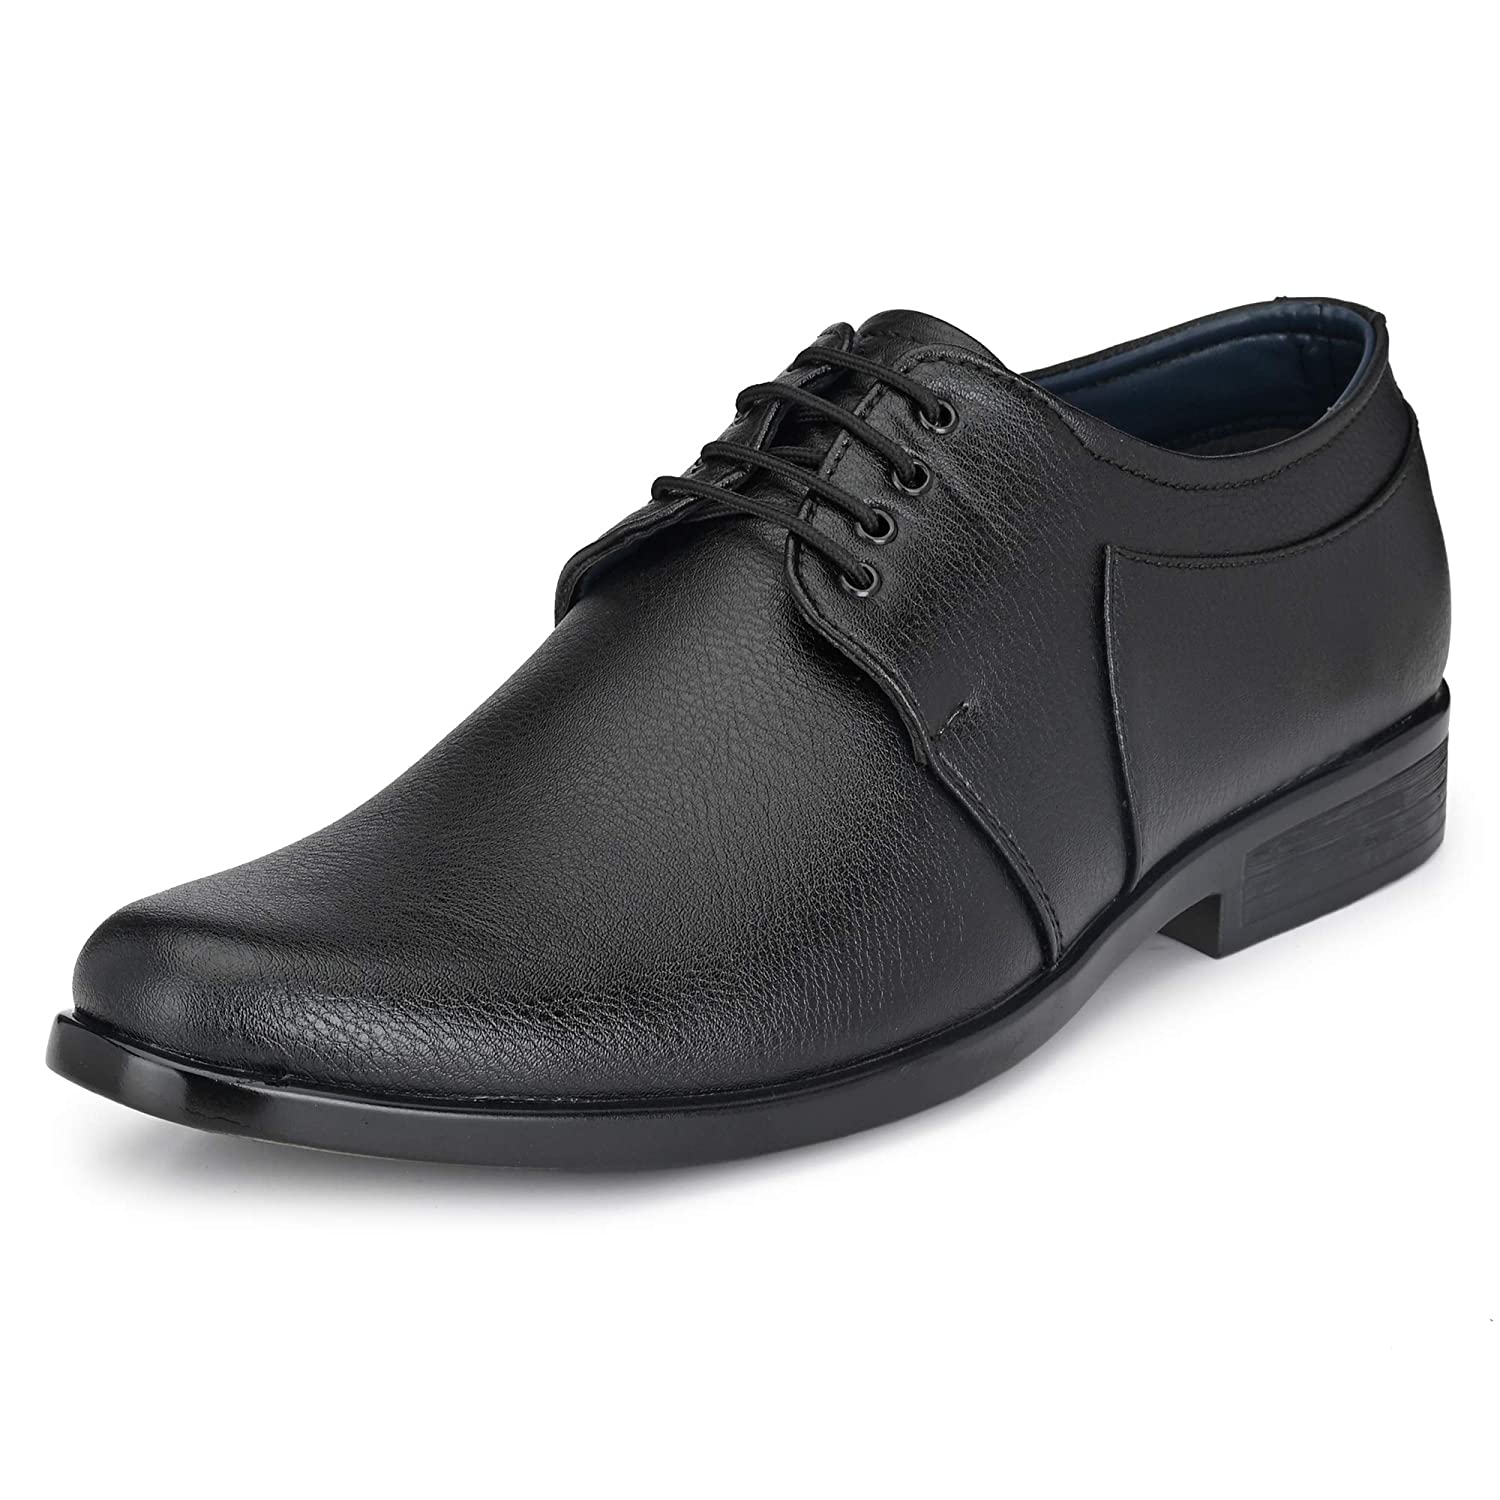 Centrino men's formal shoes black